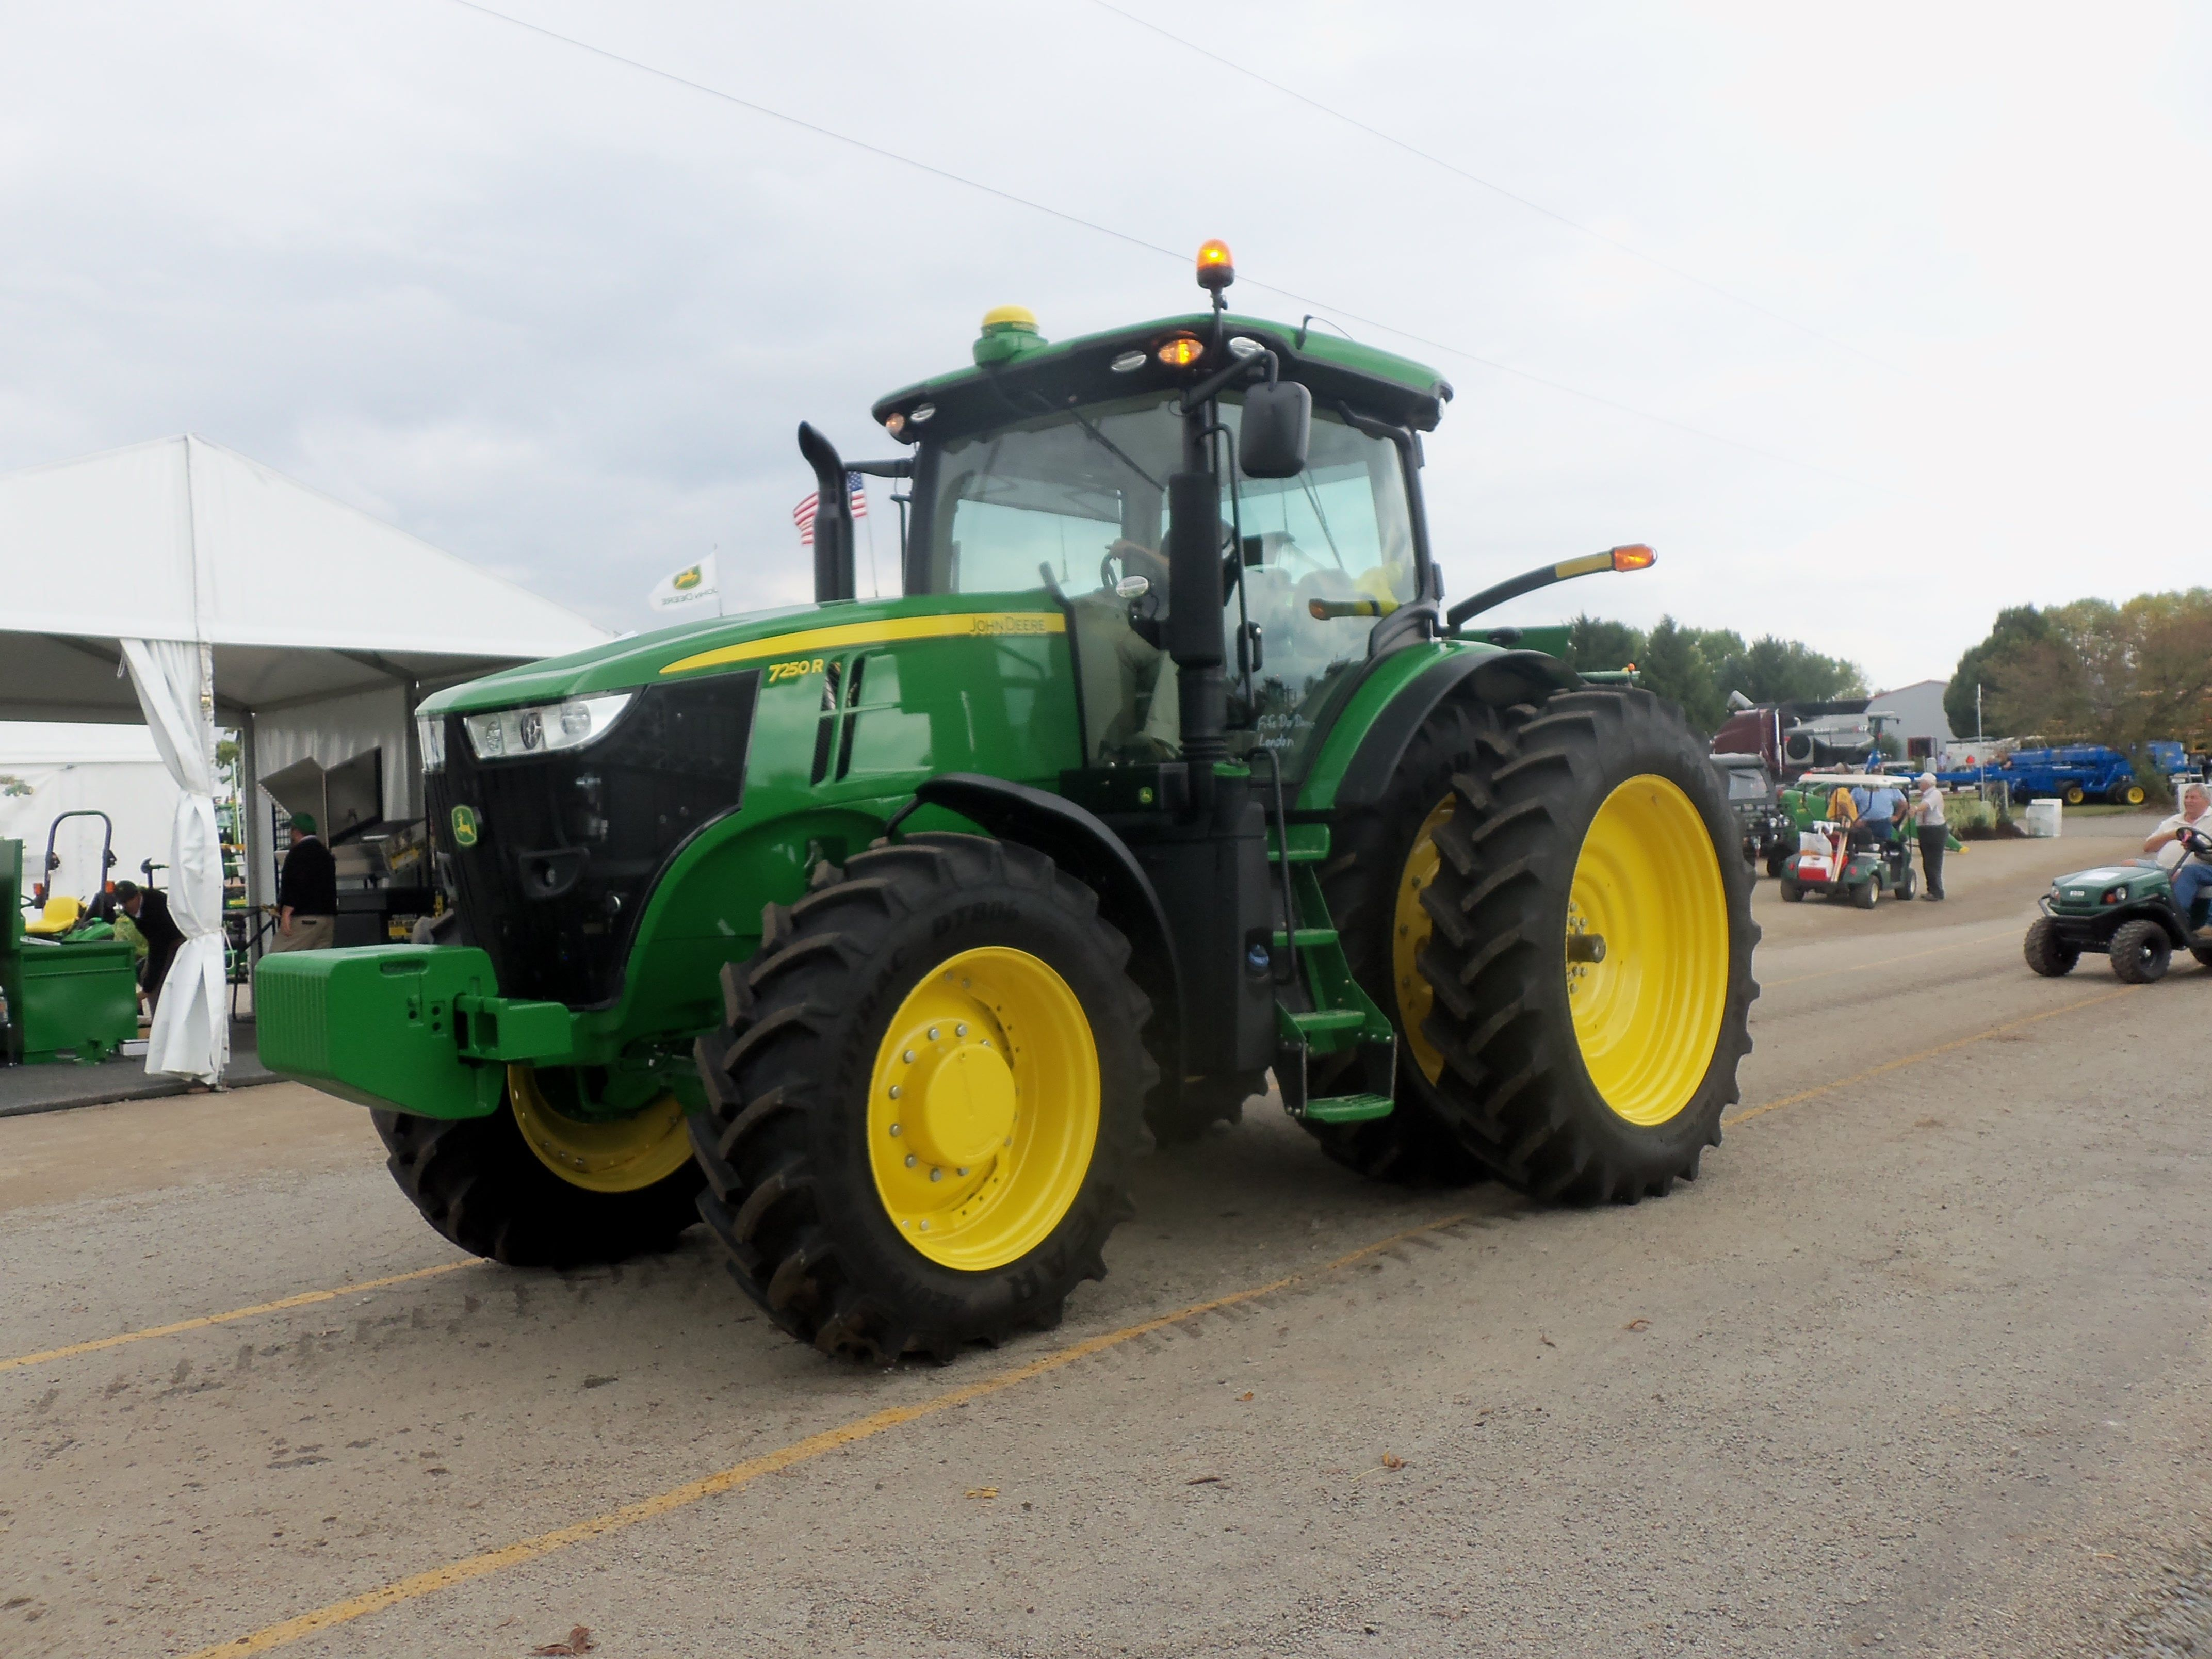 John Deere tractor leaving The Farm Science Review